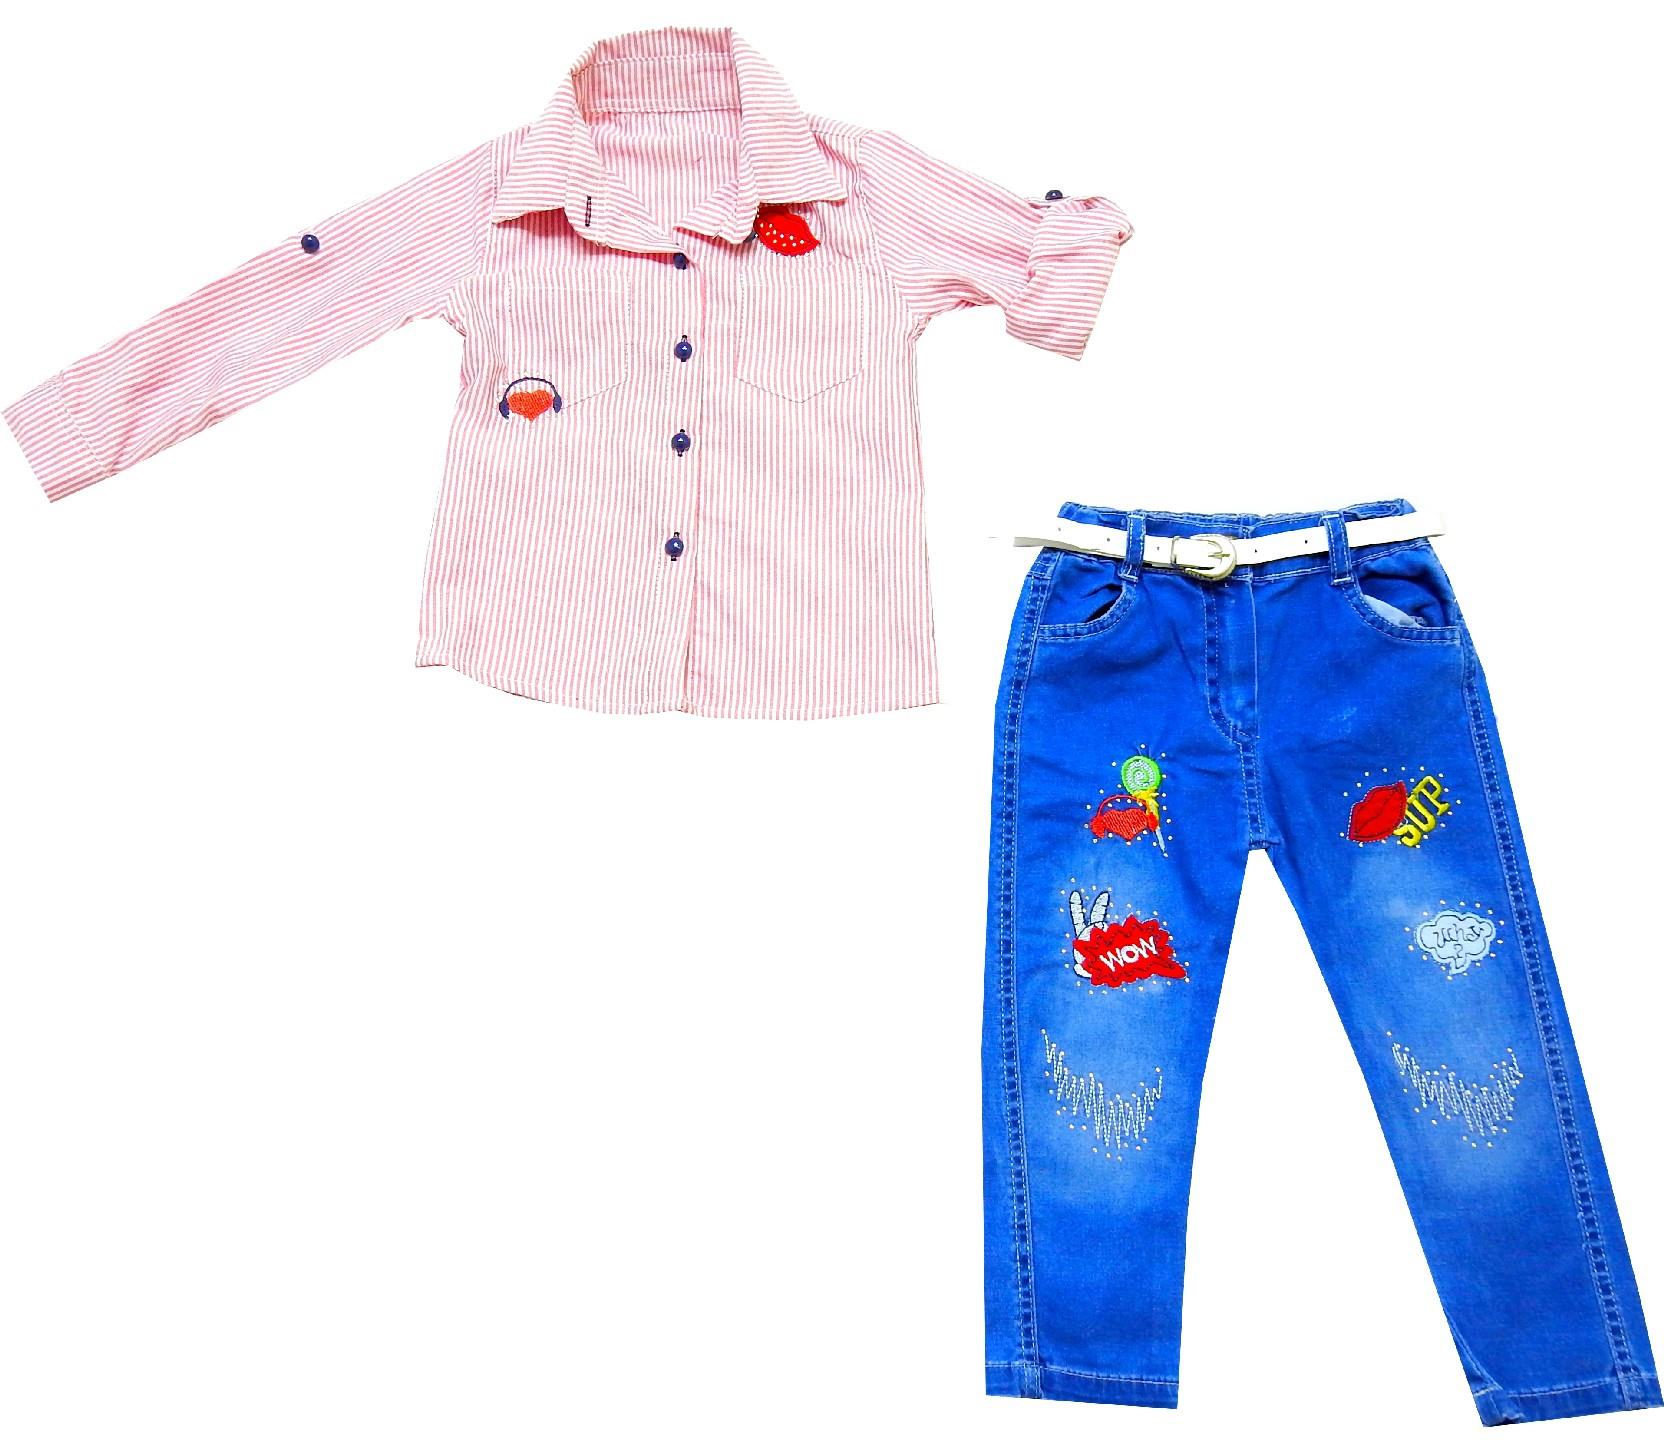 WHOLESALE APPLIQUE DESIGN SHIRT AND JEANS TROUSER FOR GIRL (1-2-3-4 AGE)